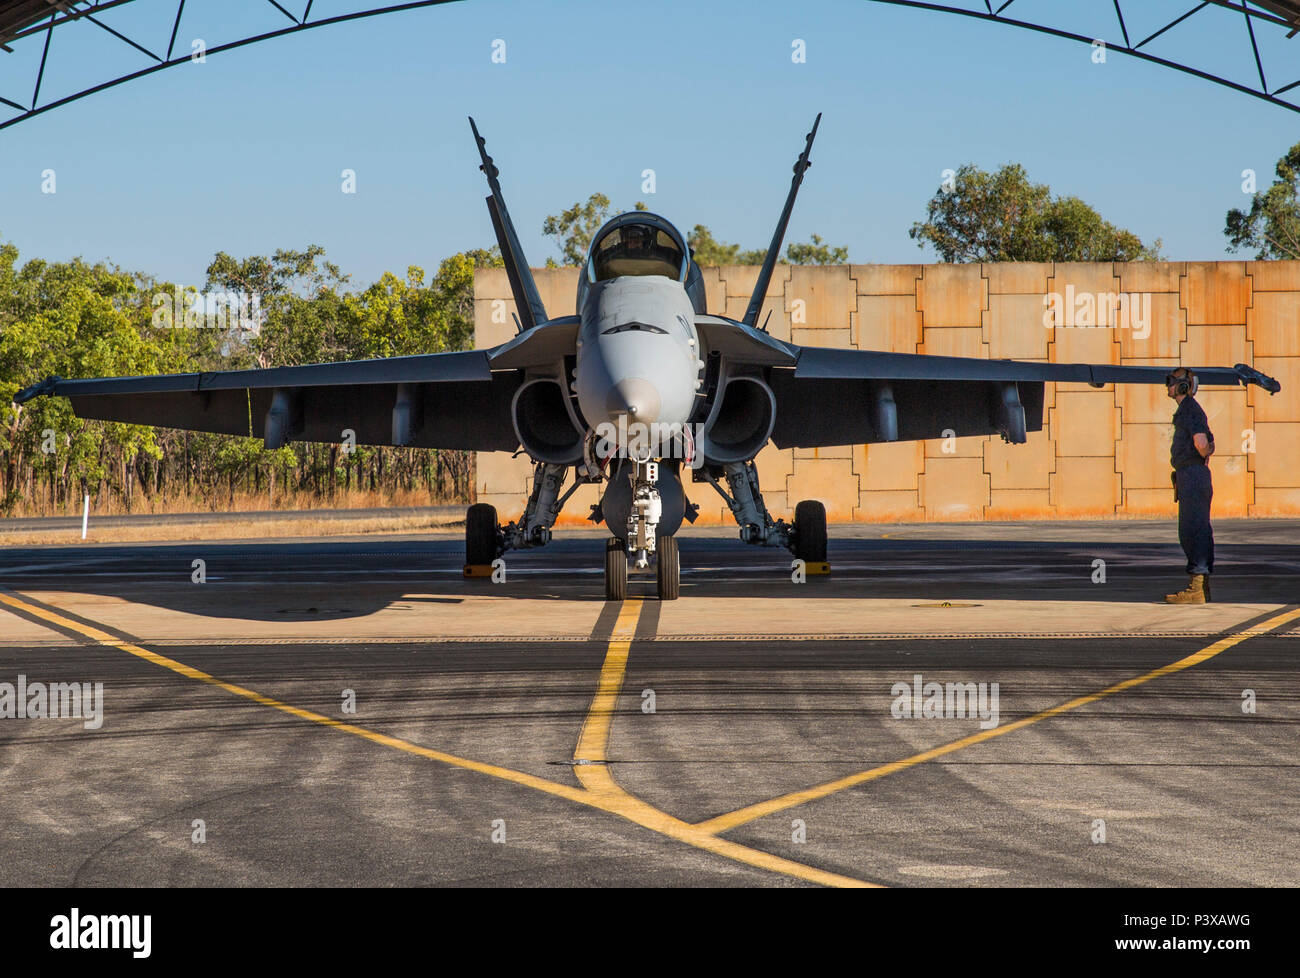 An F/A-18C Hornet assigned to Marine Fighter Attack Squadron (VMFA) 122 prepares to taxi during Exercise Pitch Black 2016 at Royal Australian Air Force Base Tindal, Australia, July 22, 2016. The flying squadron executed large force close air support, air interdiction, armed reconnaissance, and strike coordination and reconnaissance missions over the three week training evolution. The biennial, multinational exercise involves approximately 10 allied nations and prepares these forces for possible real-world scenarios. The bilateral effort amongst Exercise Pitch Black 2016 furthermore showcases t - Stock Image